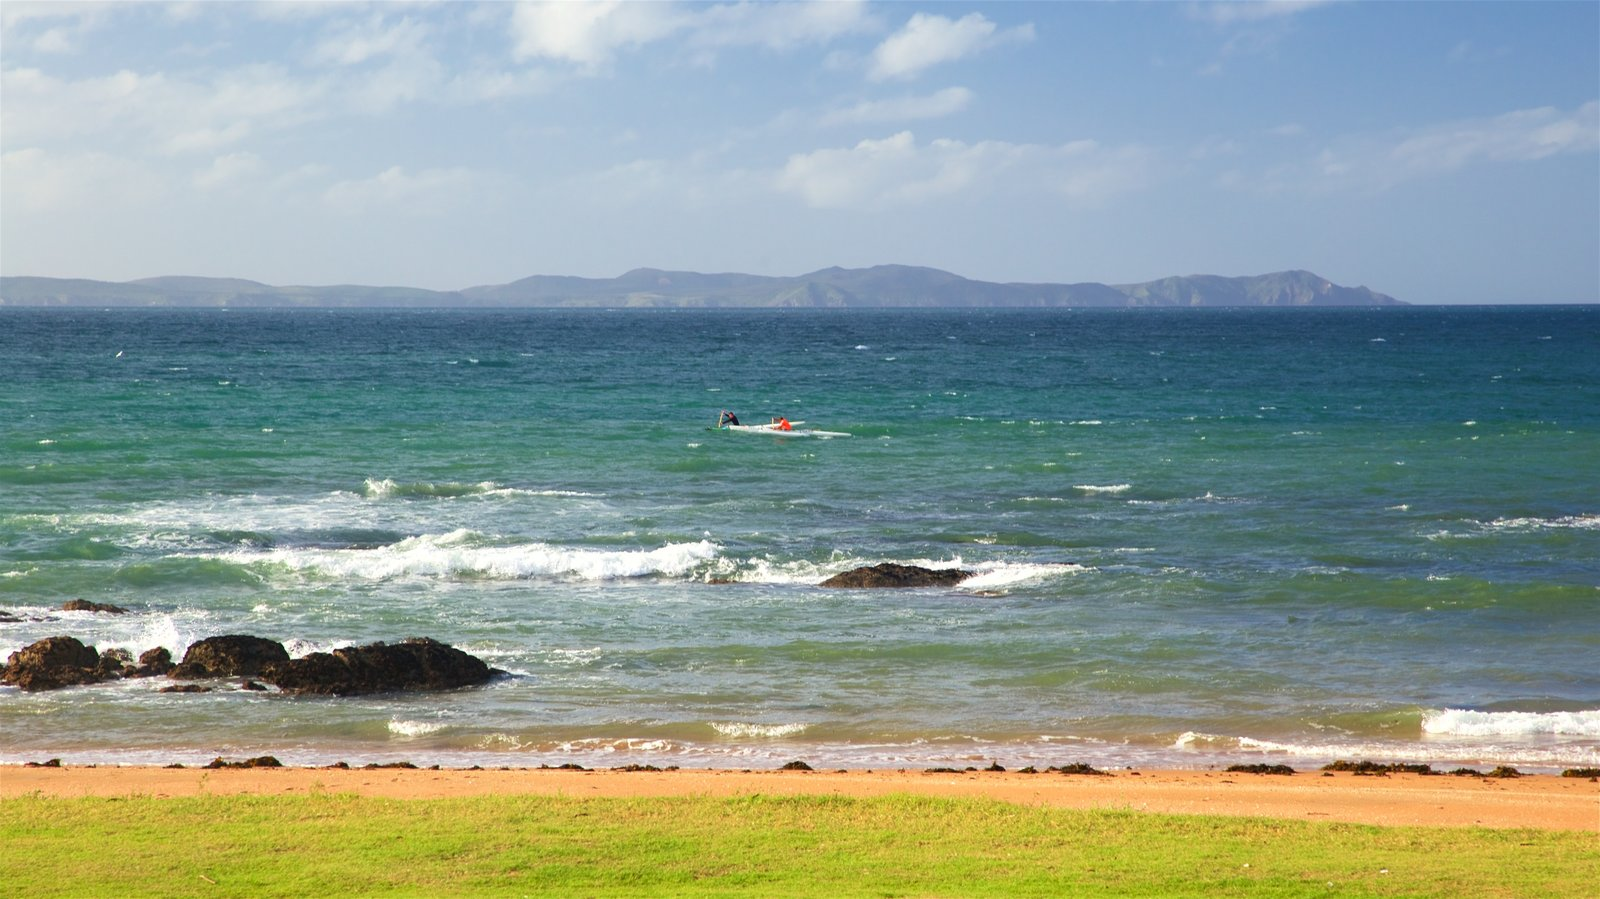 Cable Bay which includes a sandy beach, rugged coastline and general coastal views